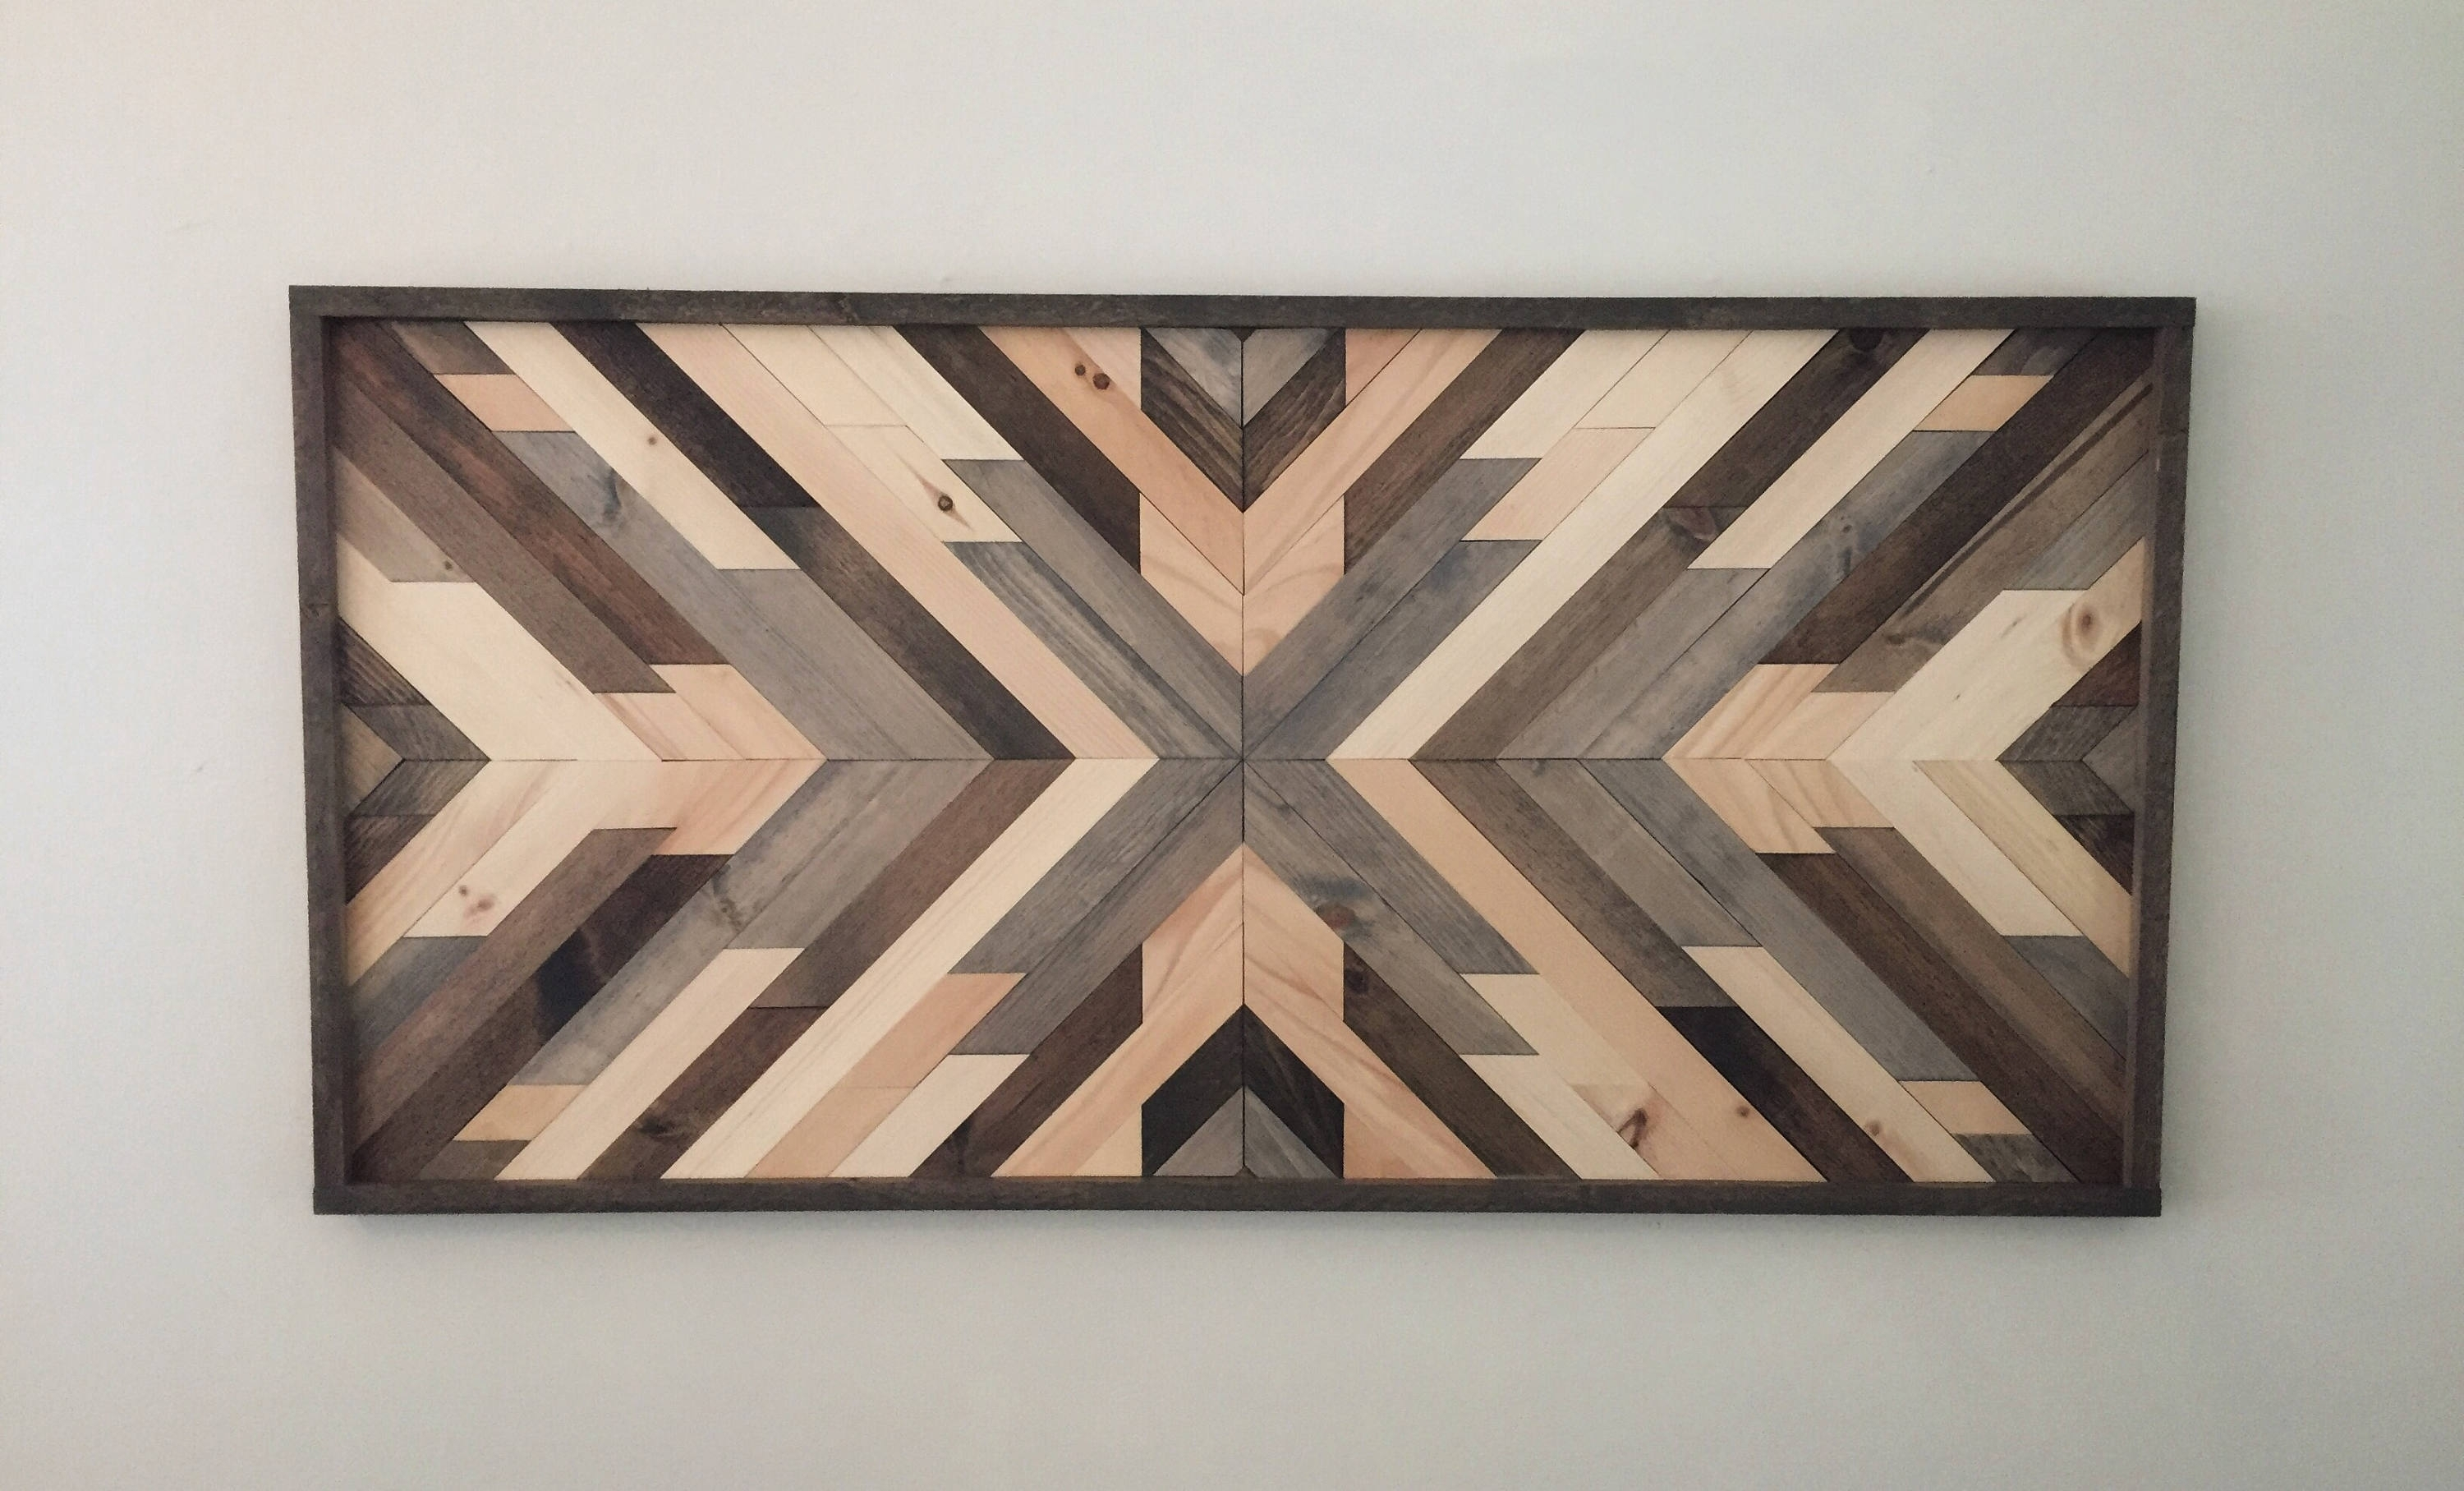 Reclaimed Wood Wall Art Wood Art Wall Decor Wood Decor, Wood Wall Throughout Most Popular Wood Art Wall (View 7 of 15)